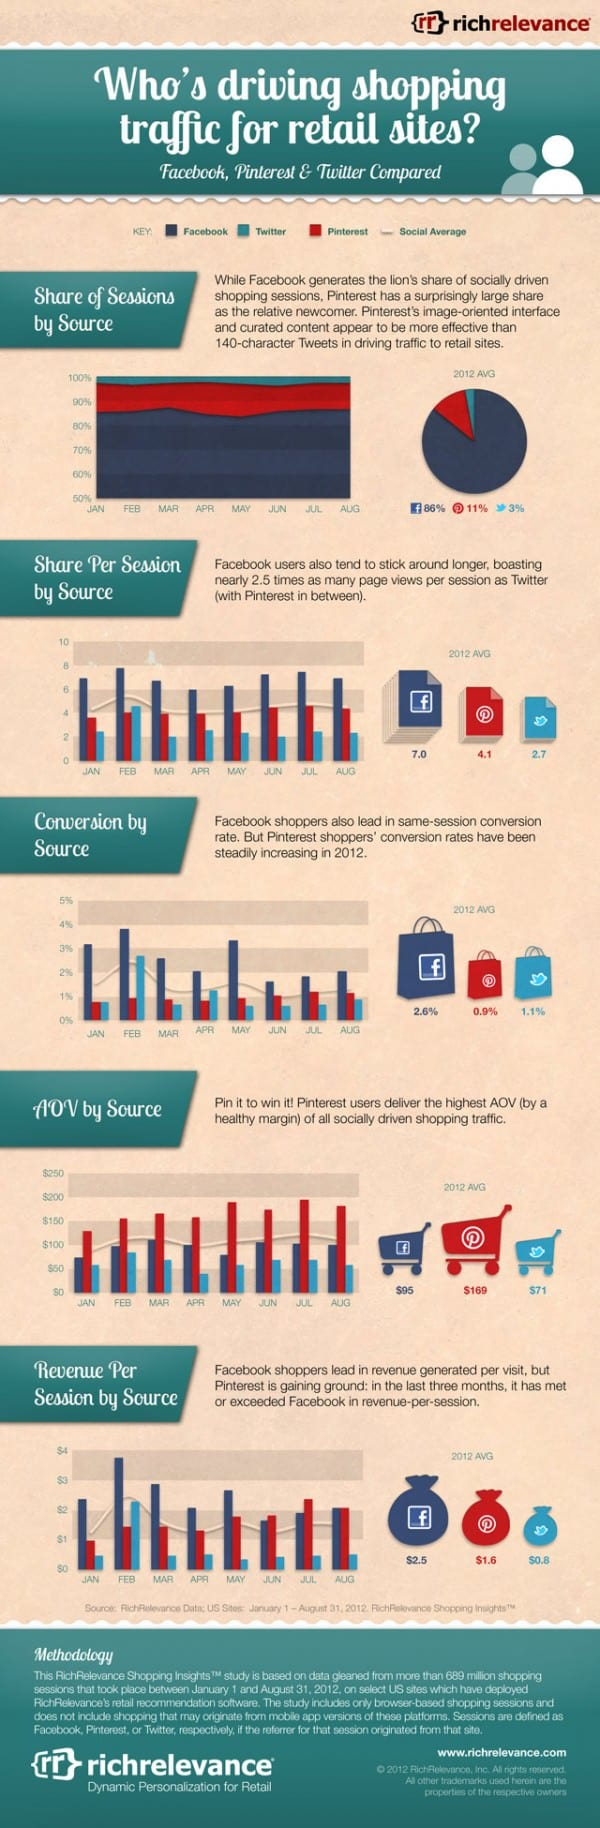 RichRelevance-Social-Infographic-US-2012-09